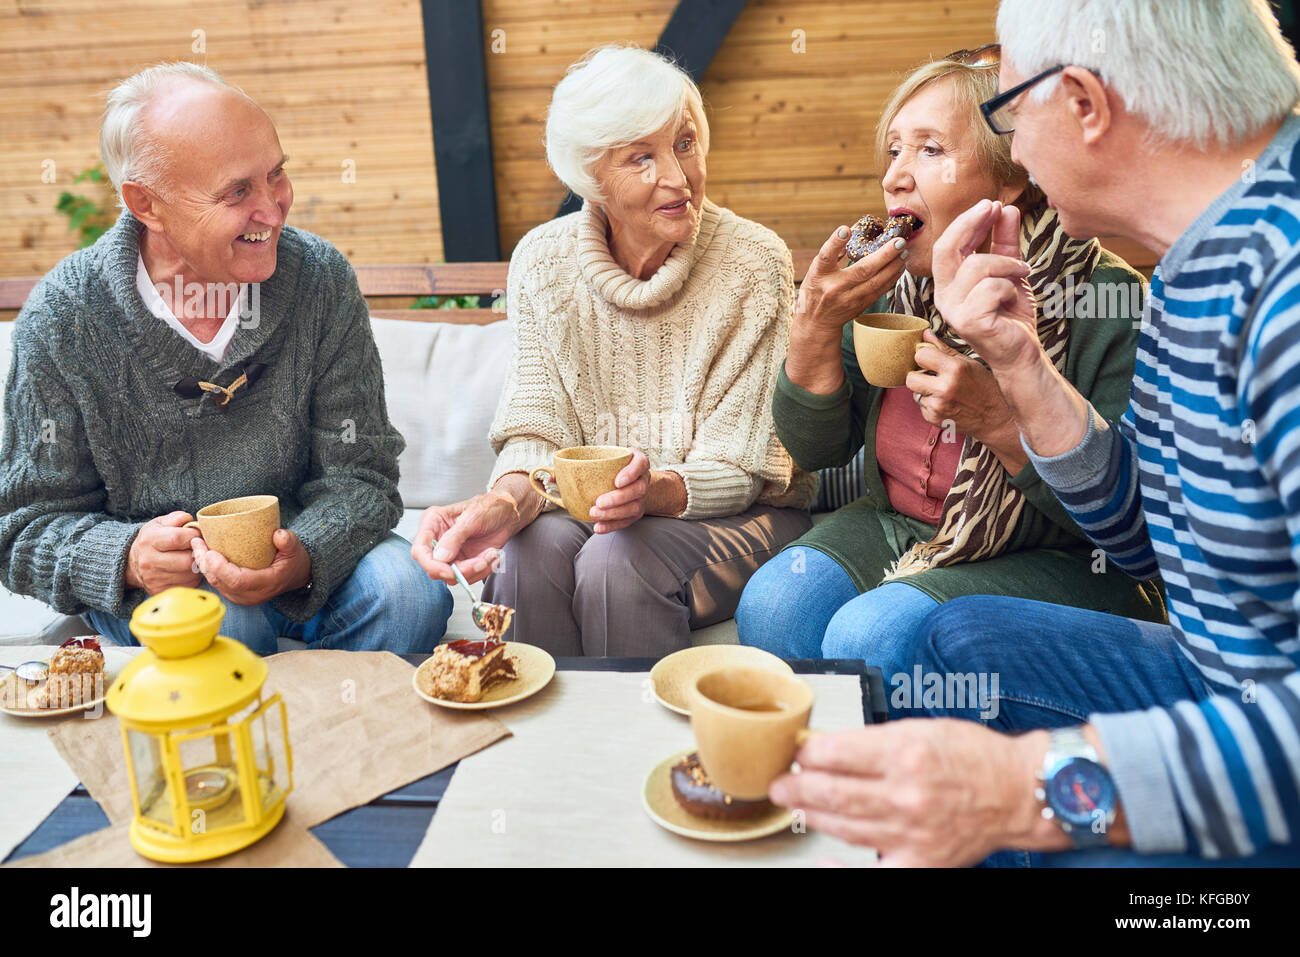 Spending Day with Friends - Stock Image